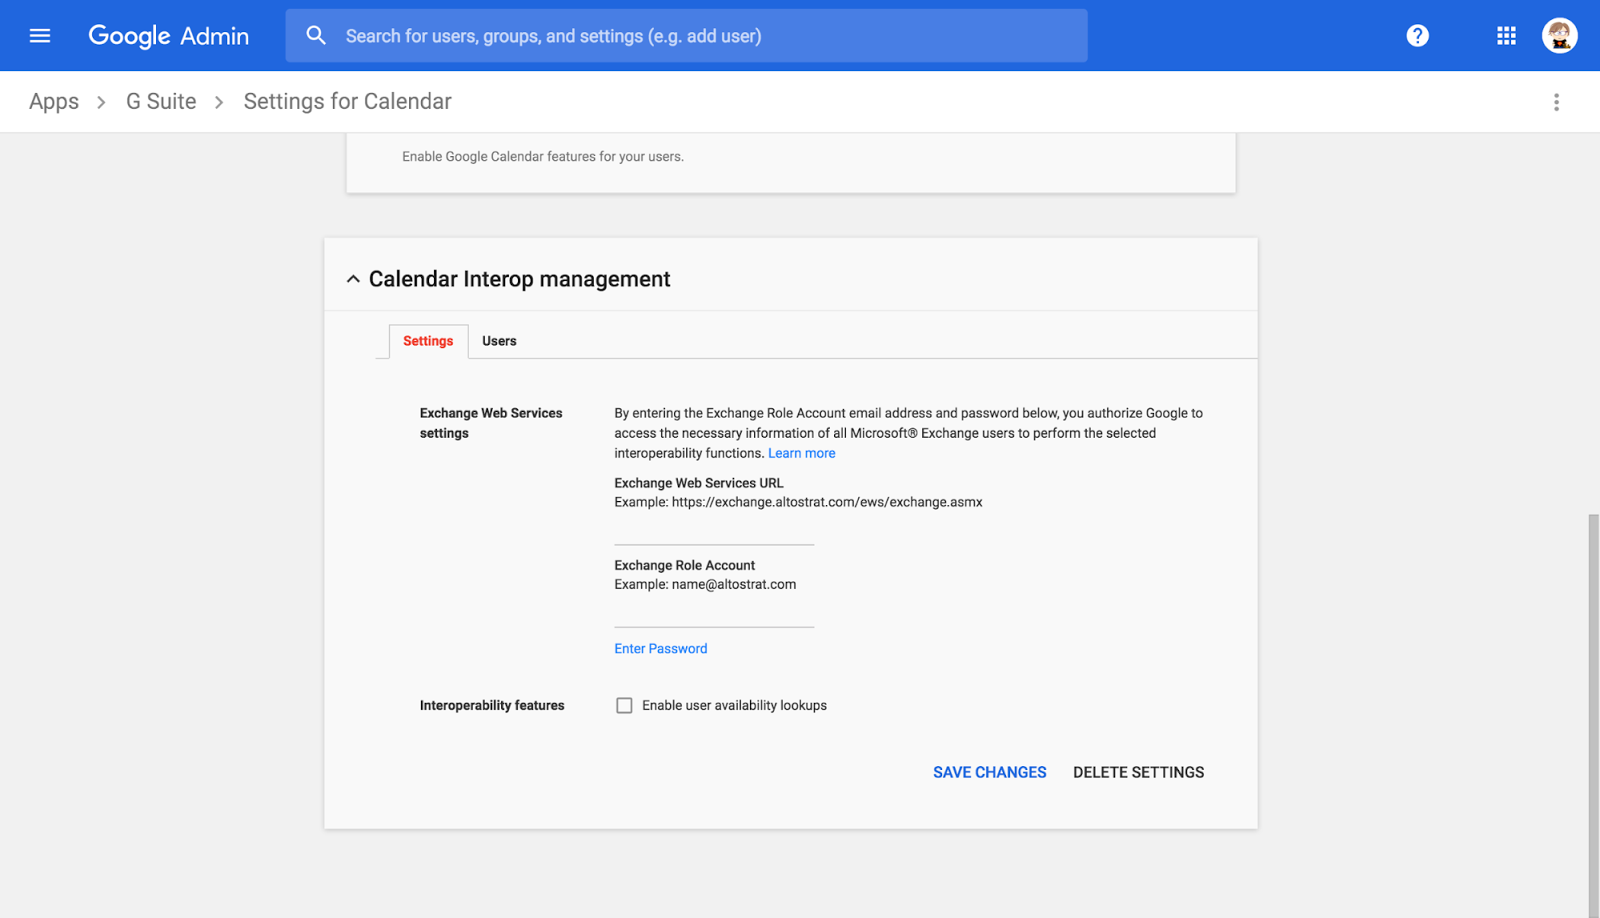 Improvements to Google Calendar Interop for Microsoft Exchange, with real  time data, logging, and simpler setup